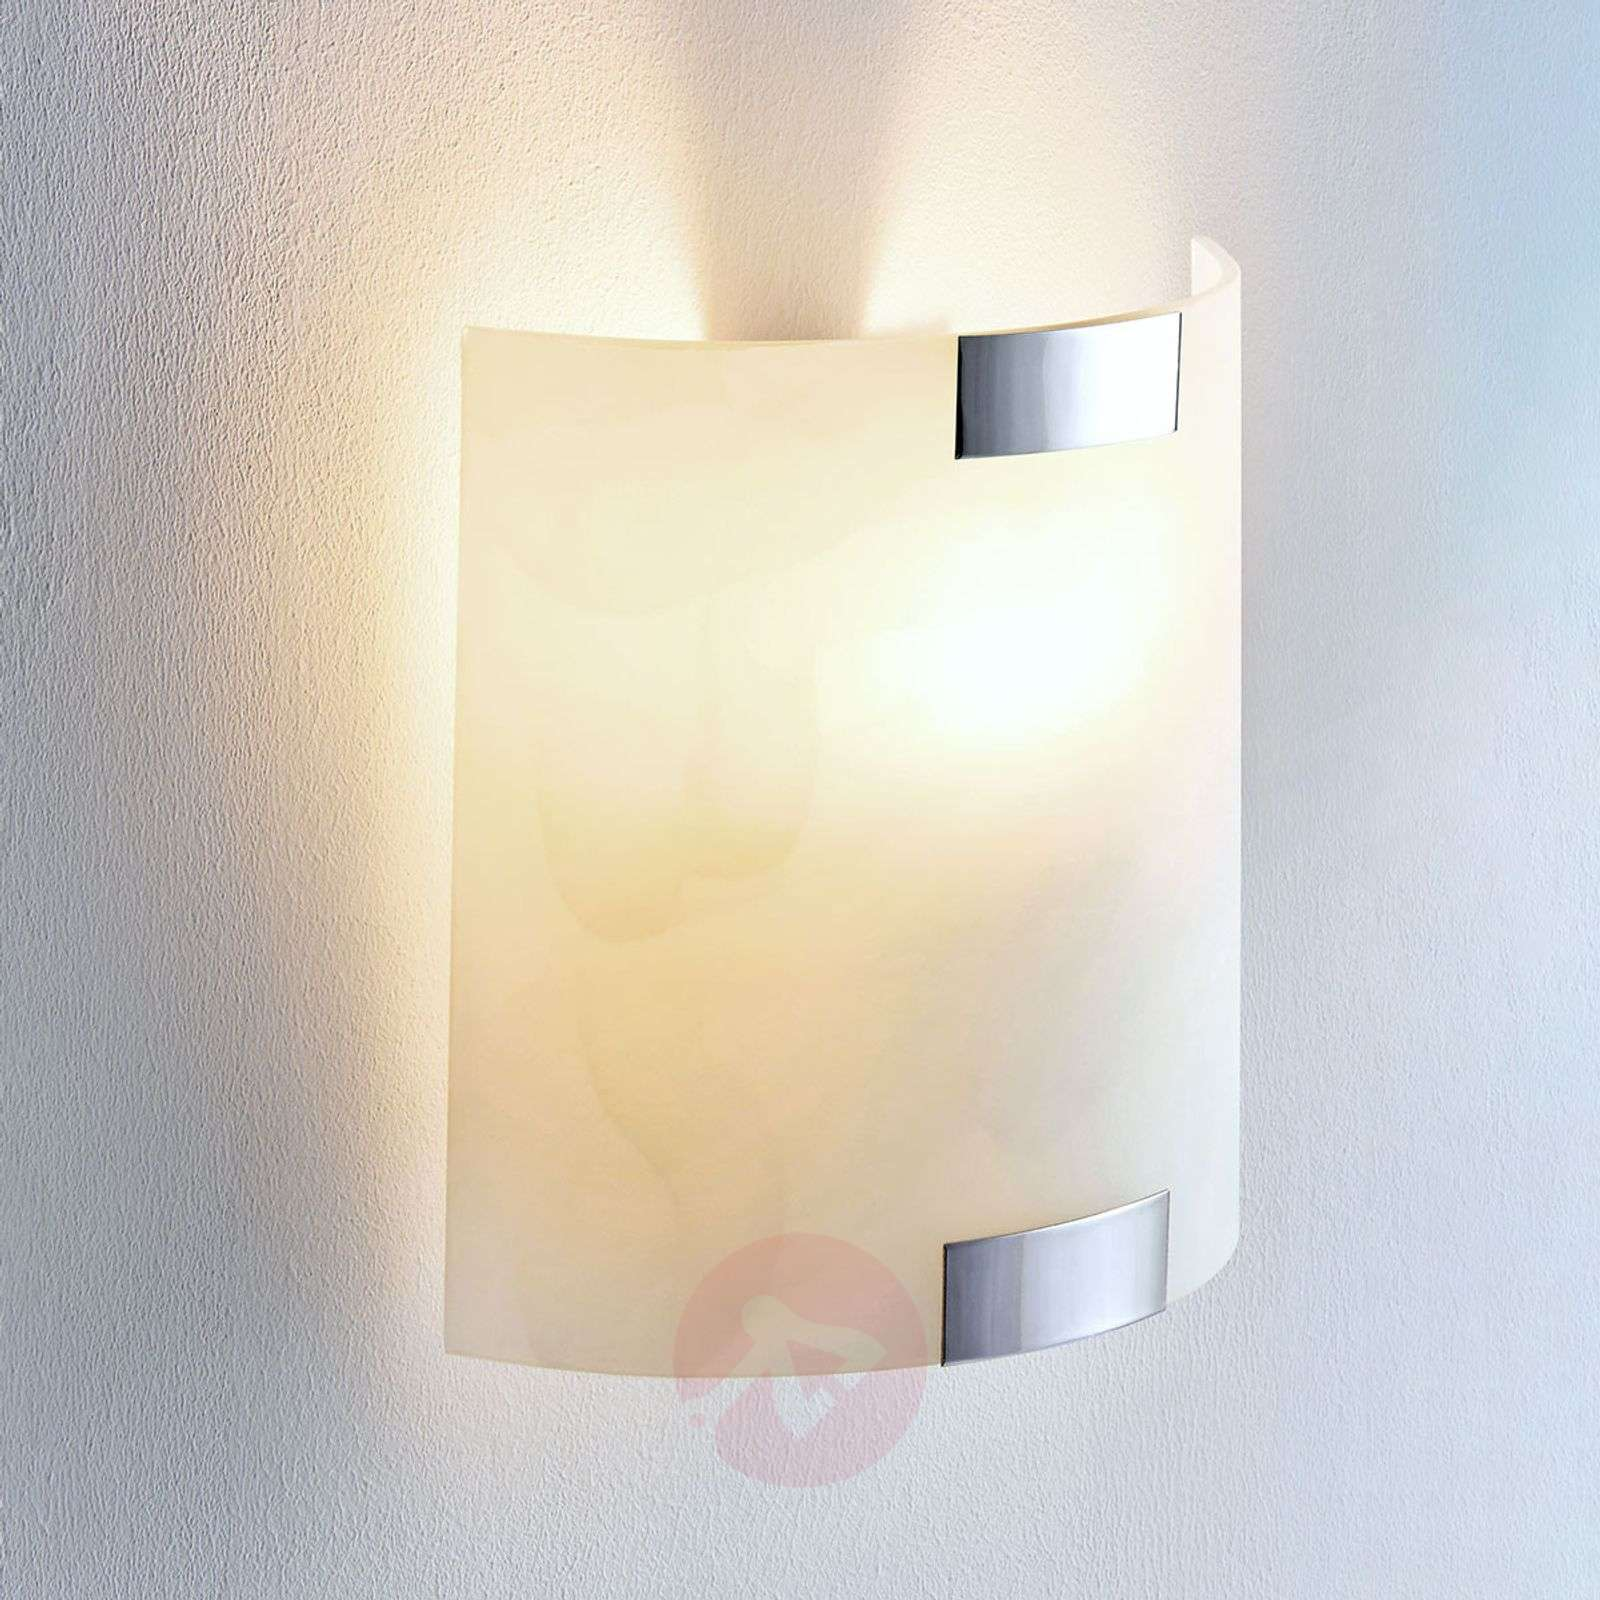 Square glass wall light Quentin with an E14 LED-9620372-08